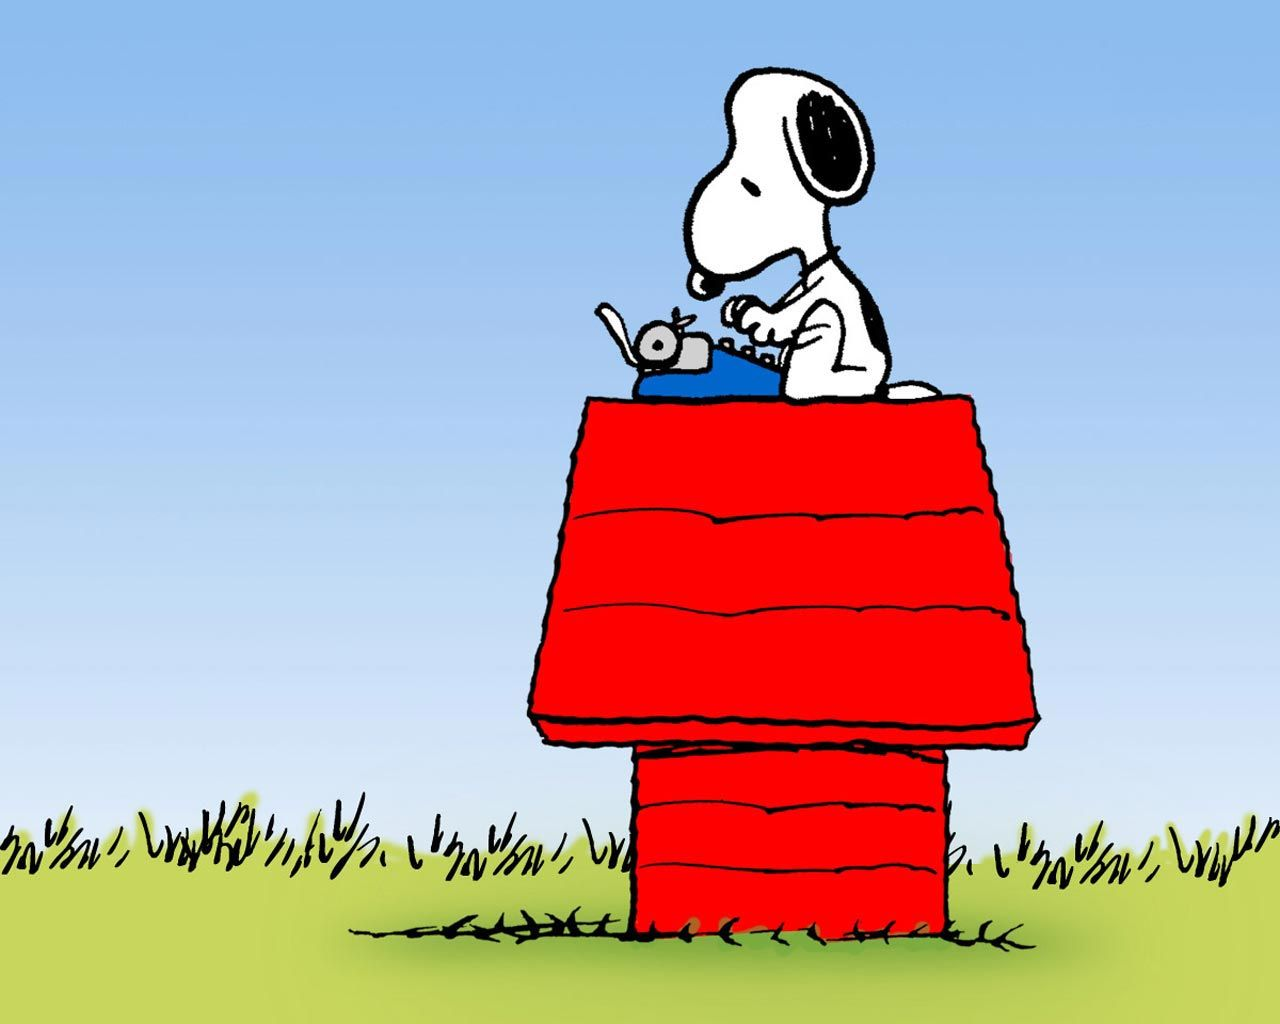 Snoopy Spring Desktop Wallpaper loopele 1280x1024